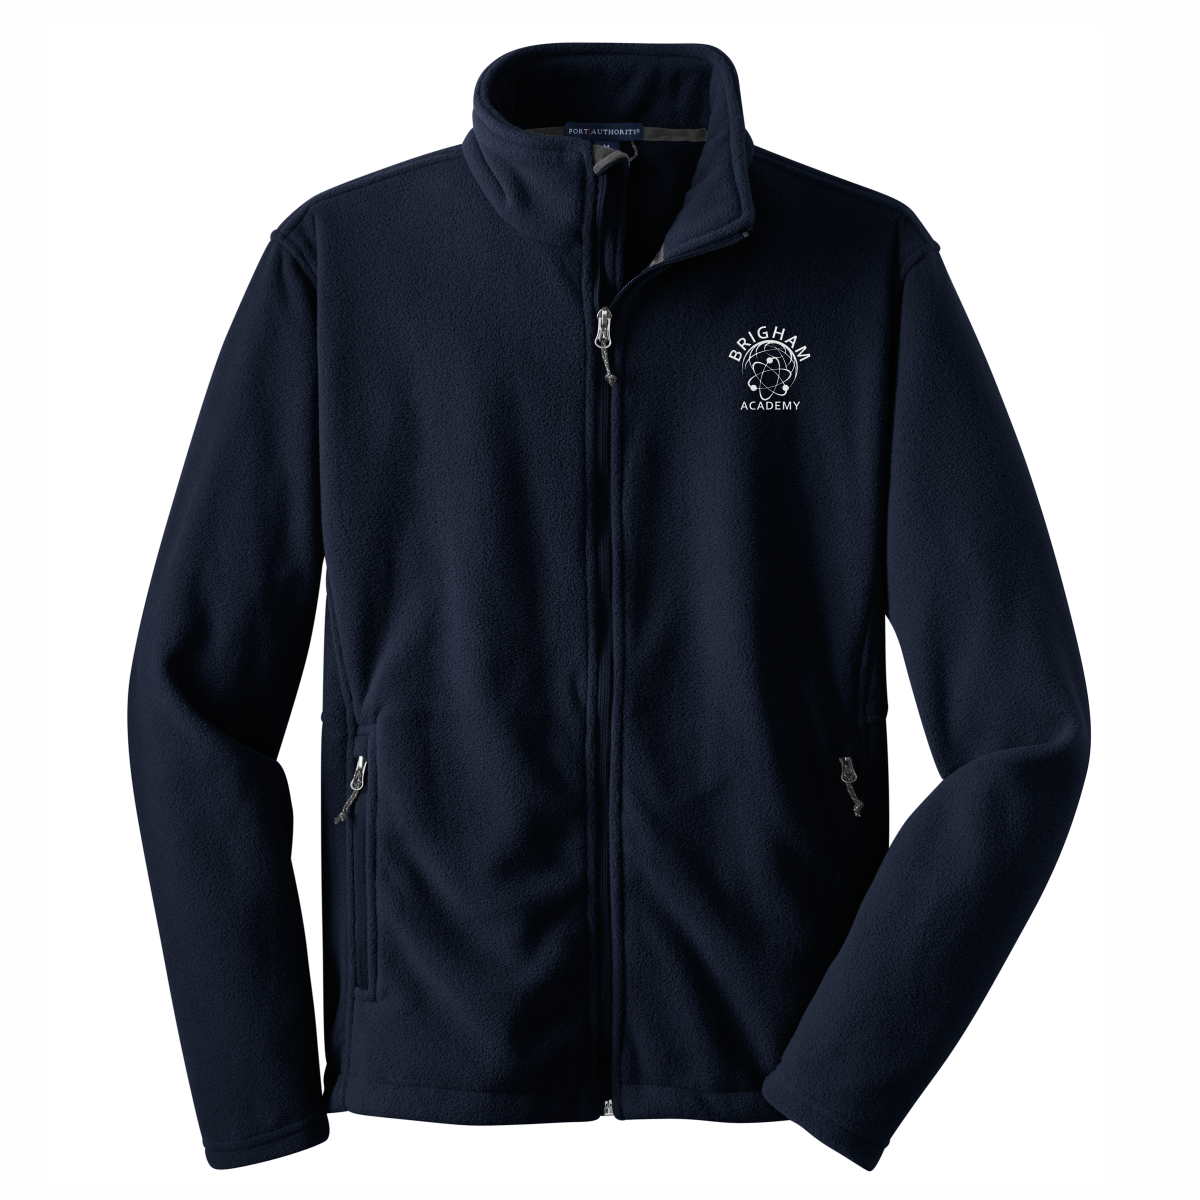 Brigham Academy ADULT SIZE - Port Authority® Fleece Jacket - Navy